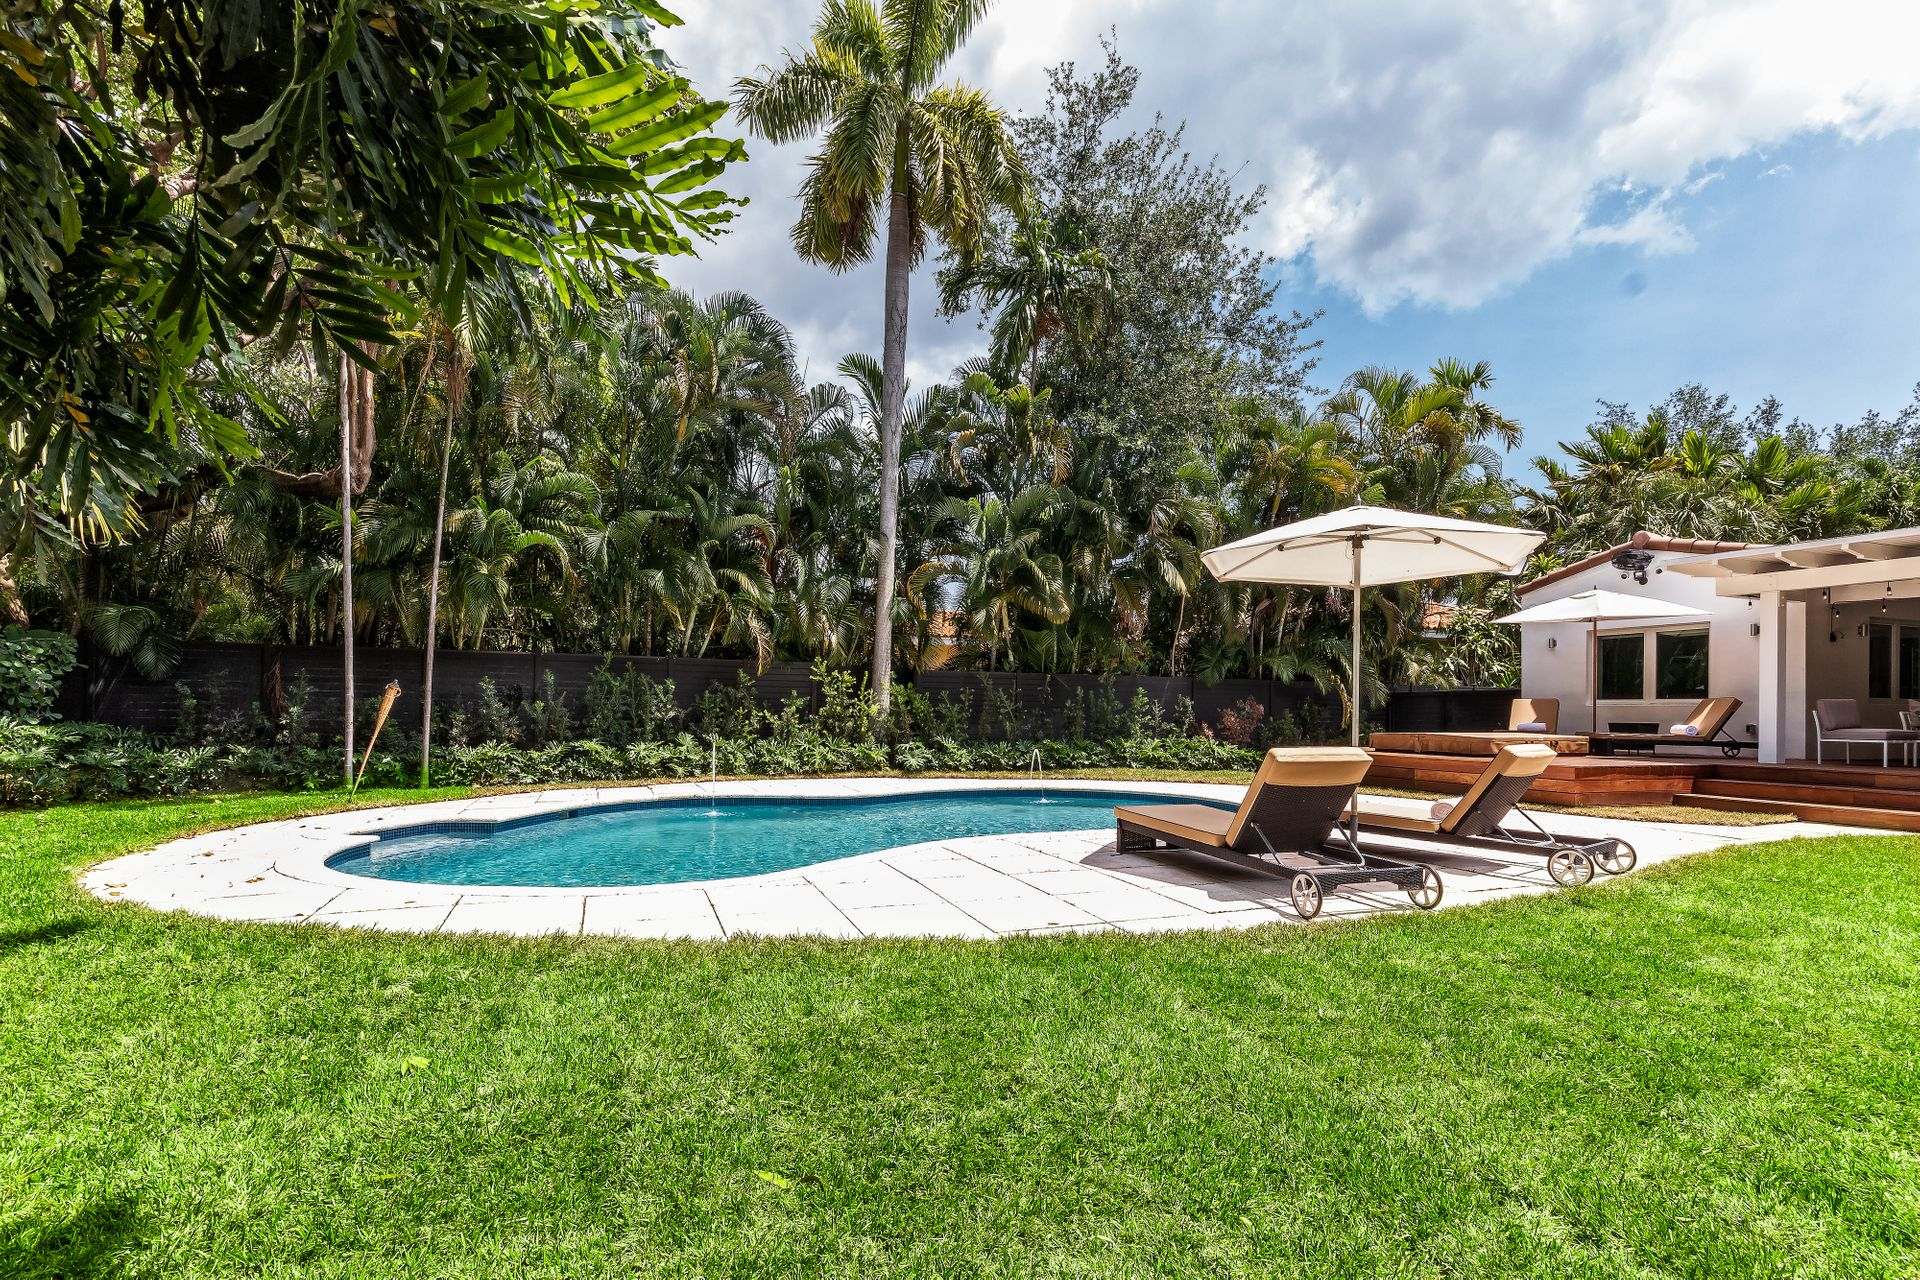 4760 BAY POINT RD - $2,399,0003 BEDROOMS |3 BATHS |3,014 SQ FTListing Agent: Vanessa Maggi LUNCH WILL BE SERVED AT THIS HOME